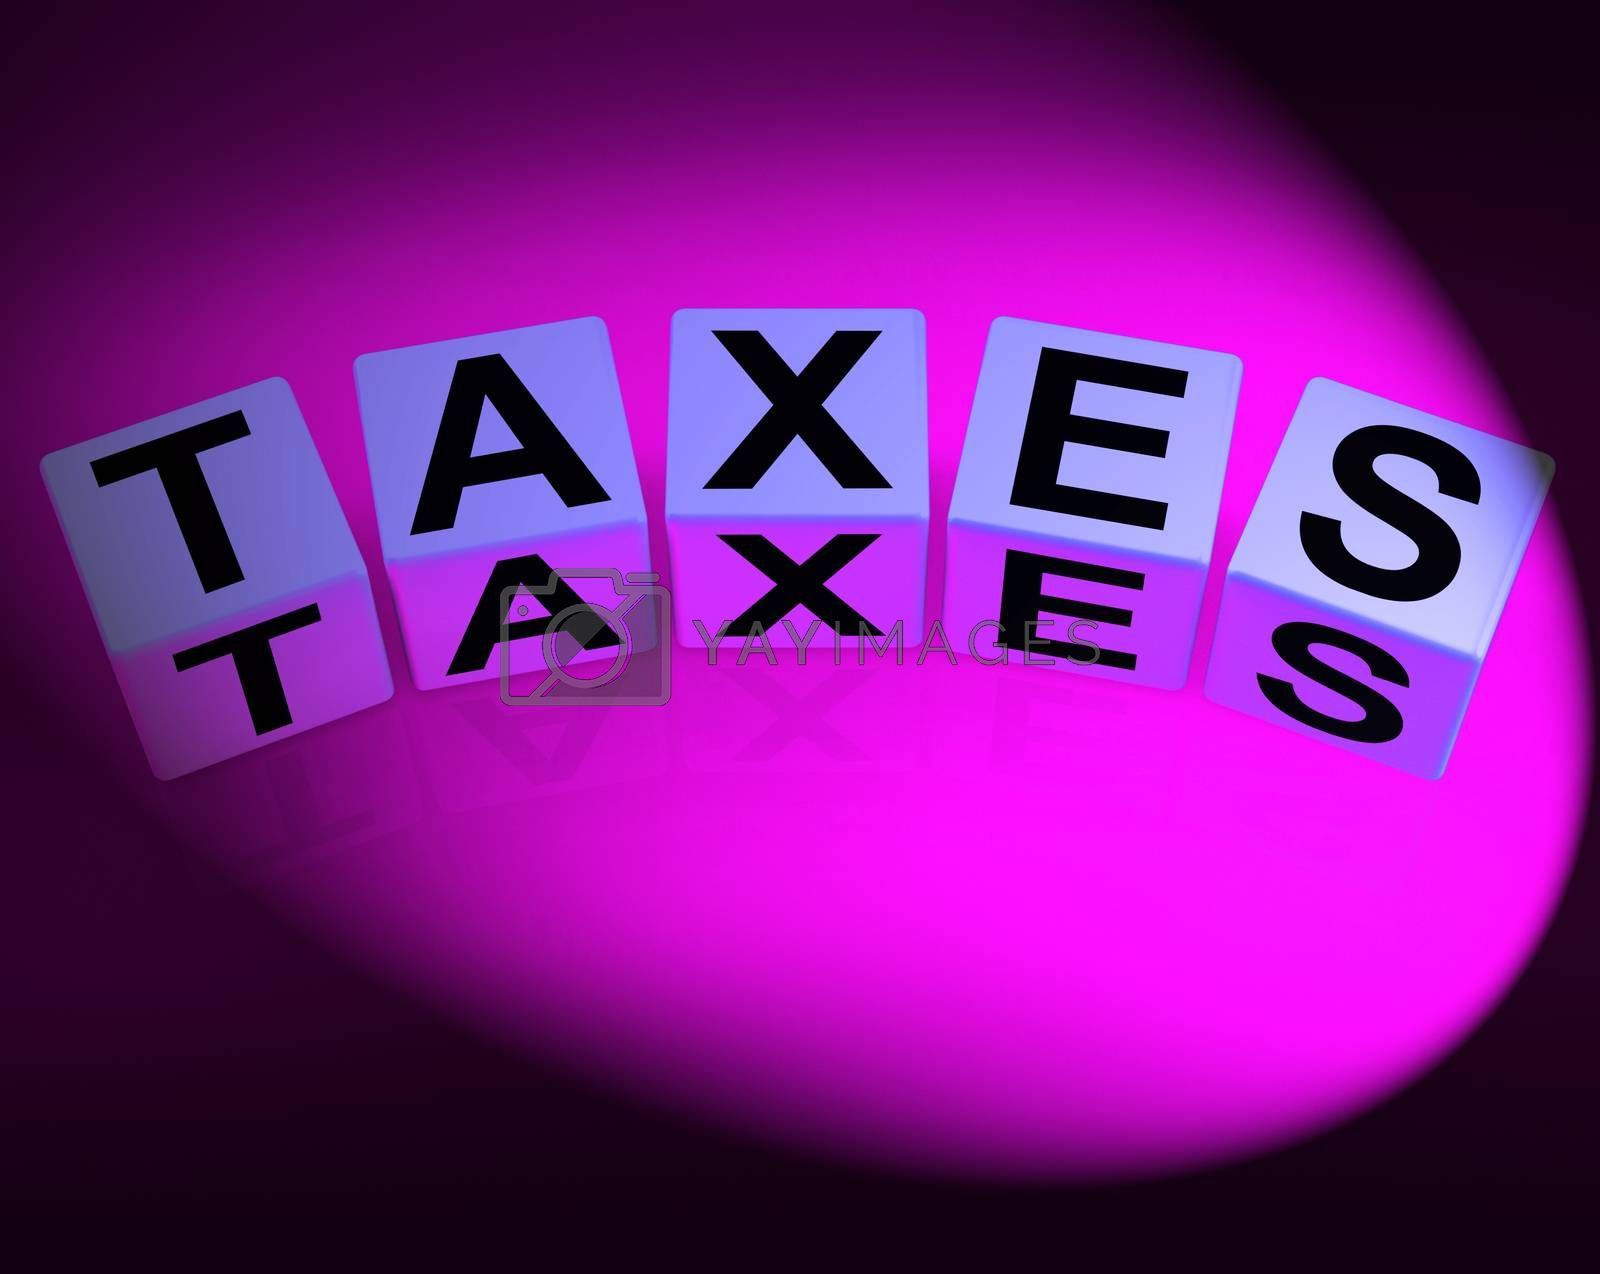 Taxes Dice Represent Duties and Taxation Documents by stuartmiles